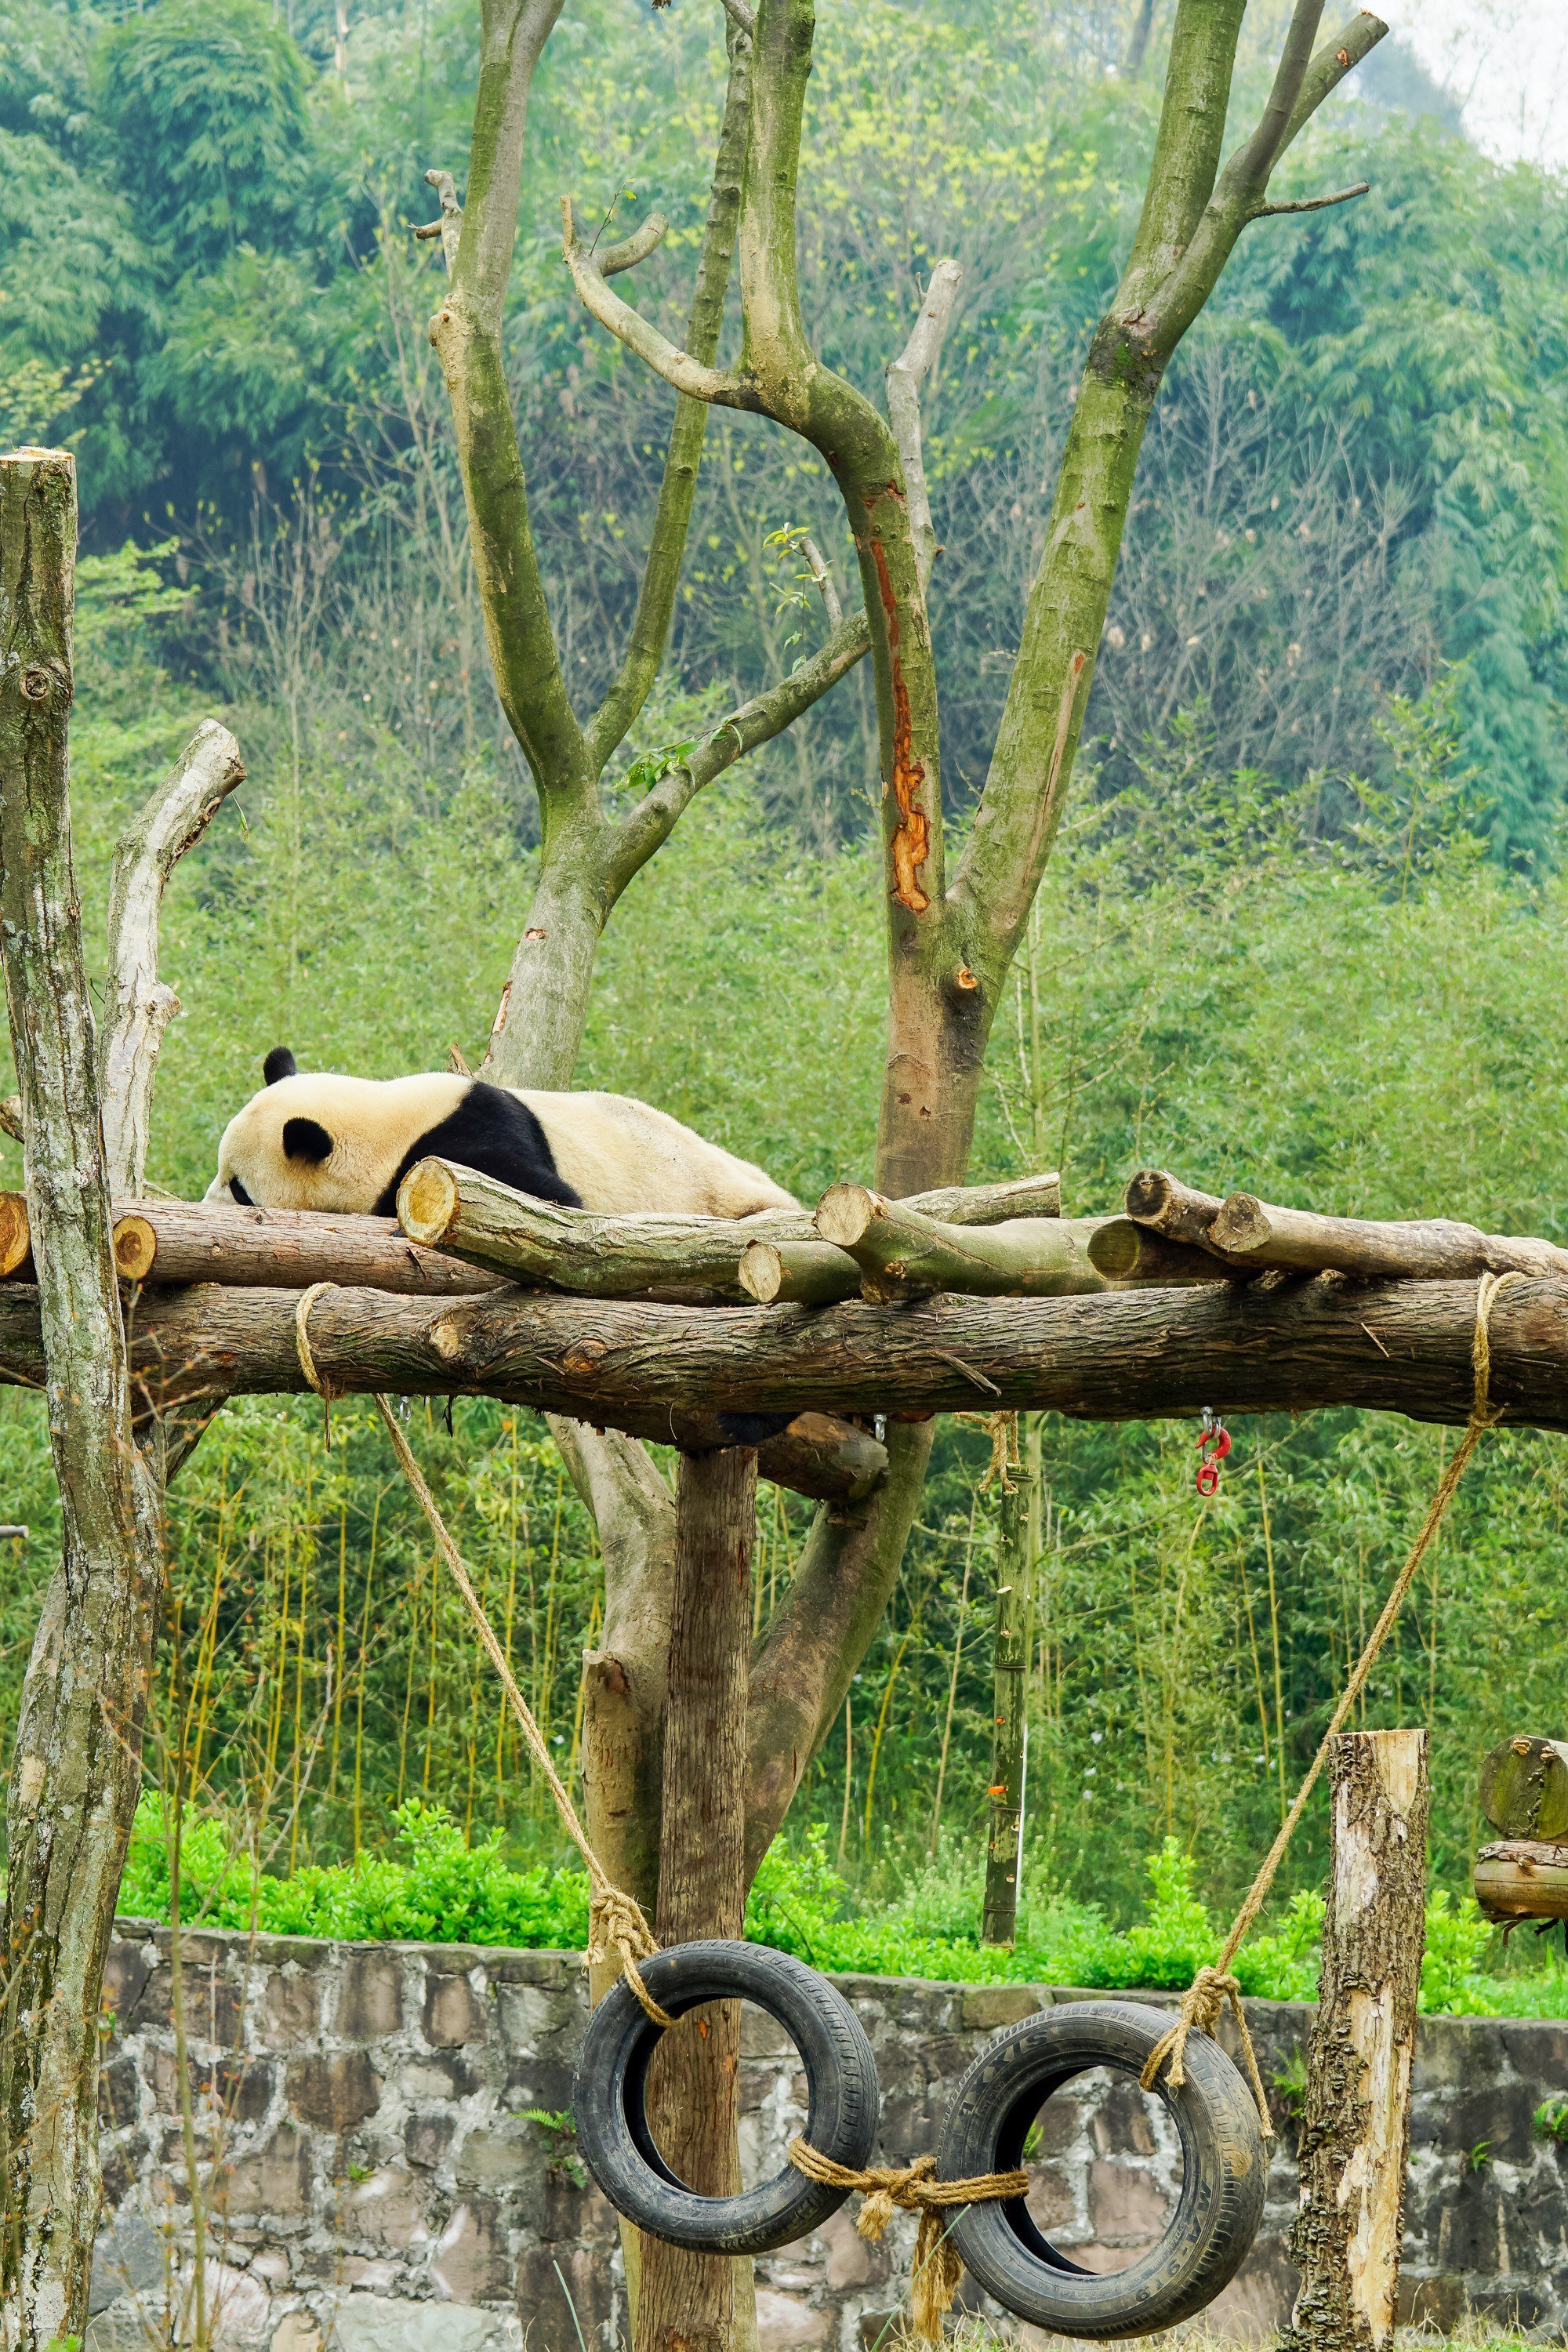 A sleeping panda at Dujiangyan Panda Base in China.